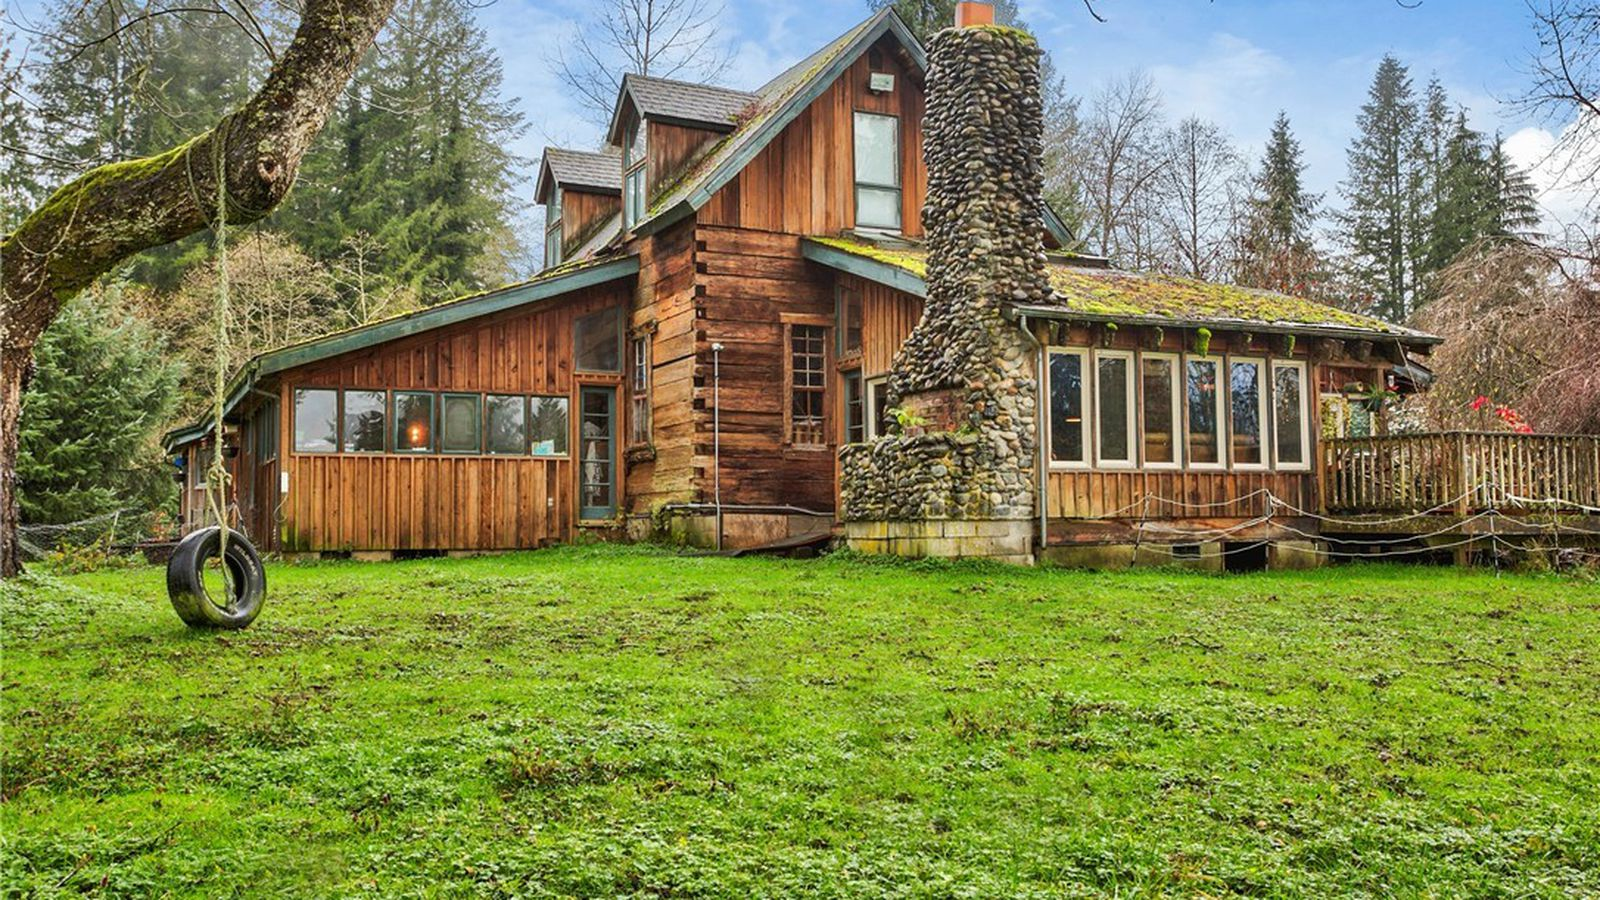 5 of our favorite seattle area homes from november for New home builders in seattle area